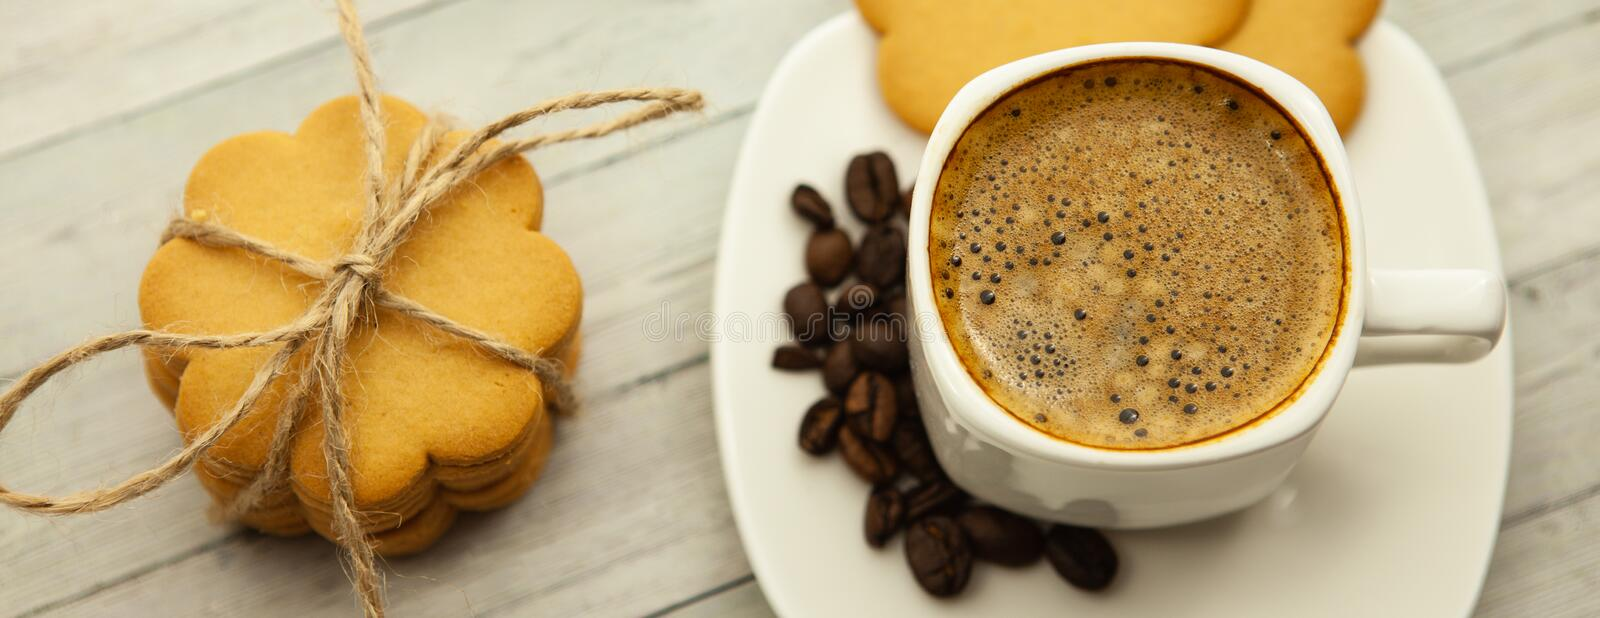 Black coffee with milk froth on a wooden background, ginger cookies and good mood in the morning, close-up royalty free stock photography